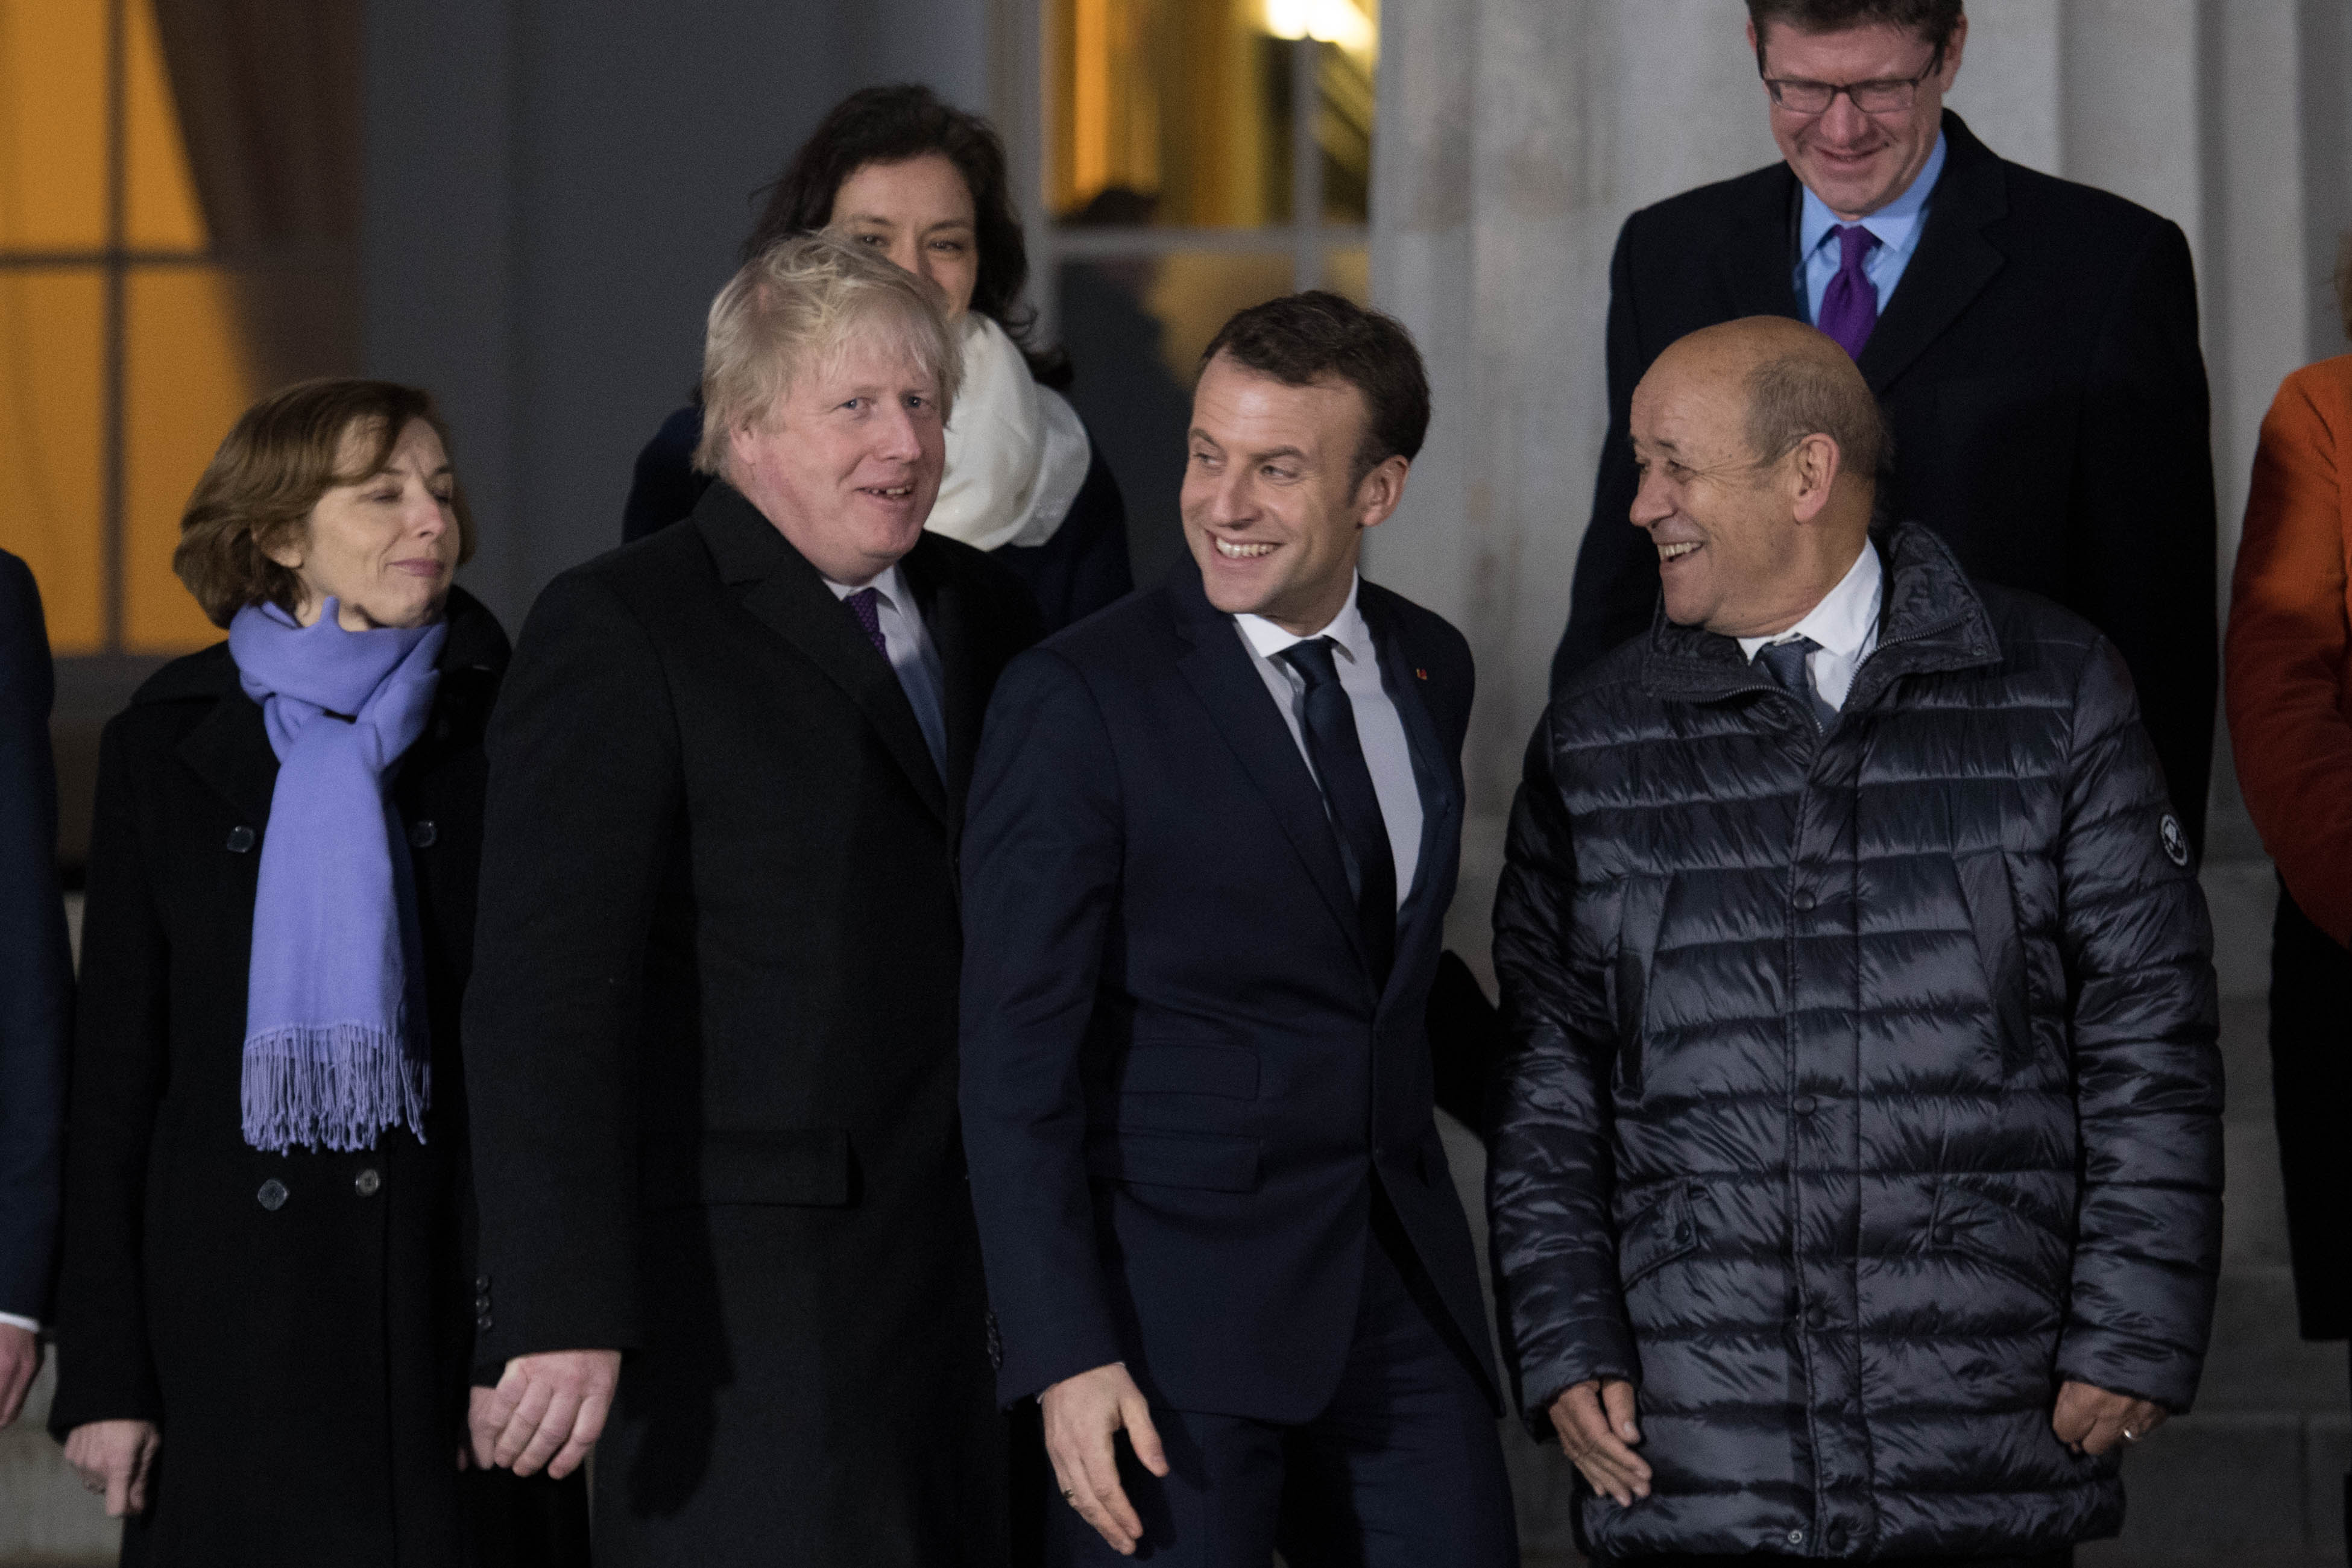 CAMBERLEY, ENGLAND - JANUARY 18:  Foreign Secretary Boris Johnson (left) and French President Emmanuel Macron (centre) attend a 'family photograph' at the Royal Military Academy Sandhurst on January 18, 2018 in Camberley, England. The heads of MI5, MI6, GCHQ and France's DGSE and DGSI will meet to discuss how the UK and its allies across the Channel can work to counter threats such as the targeting of concert venues like Manchester Arena and the Bataclan in Paris. (Photo by Stefan Rousseau - WPA Pool / Getty Images)